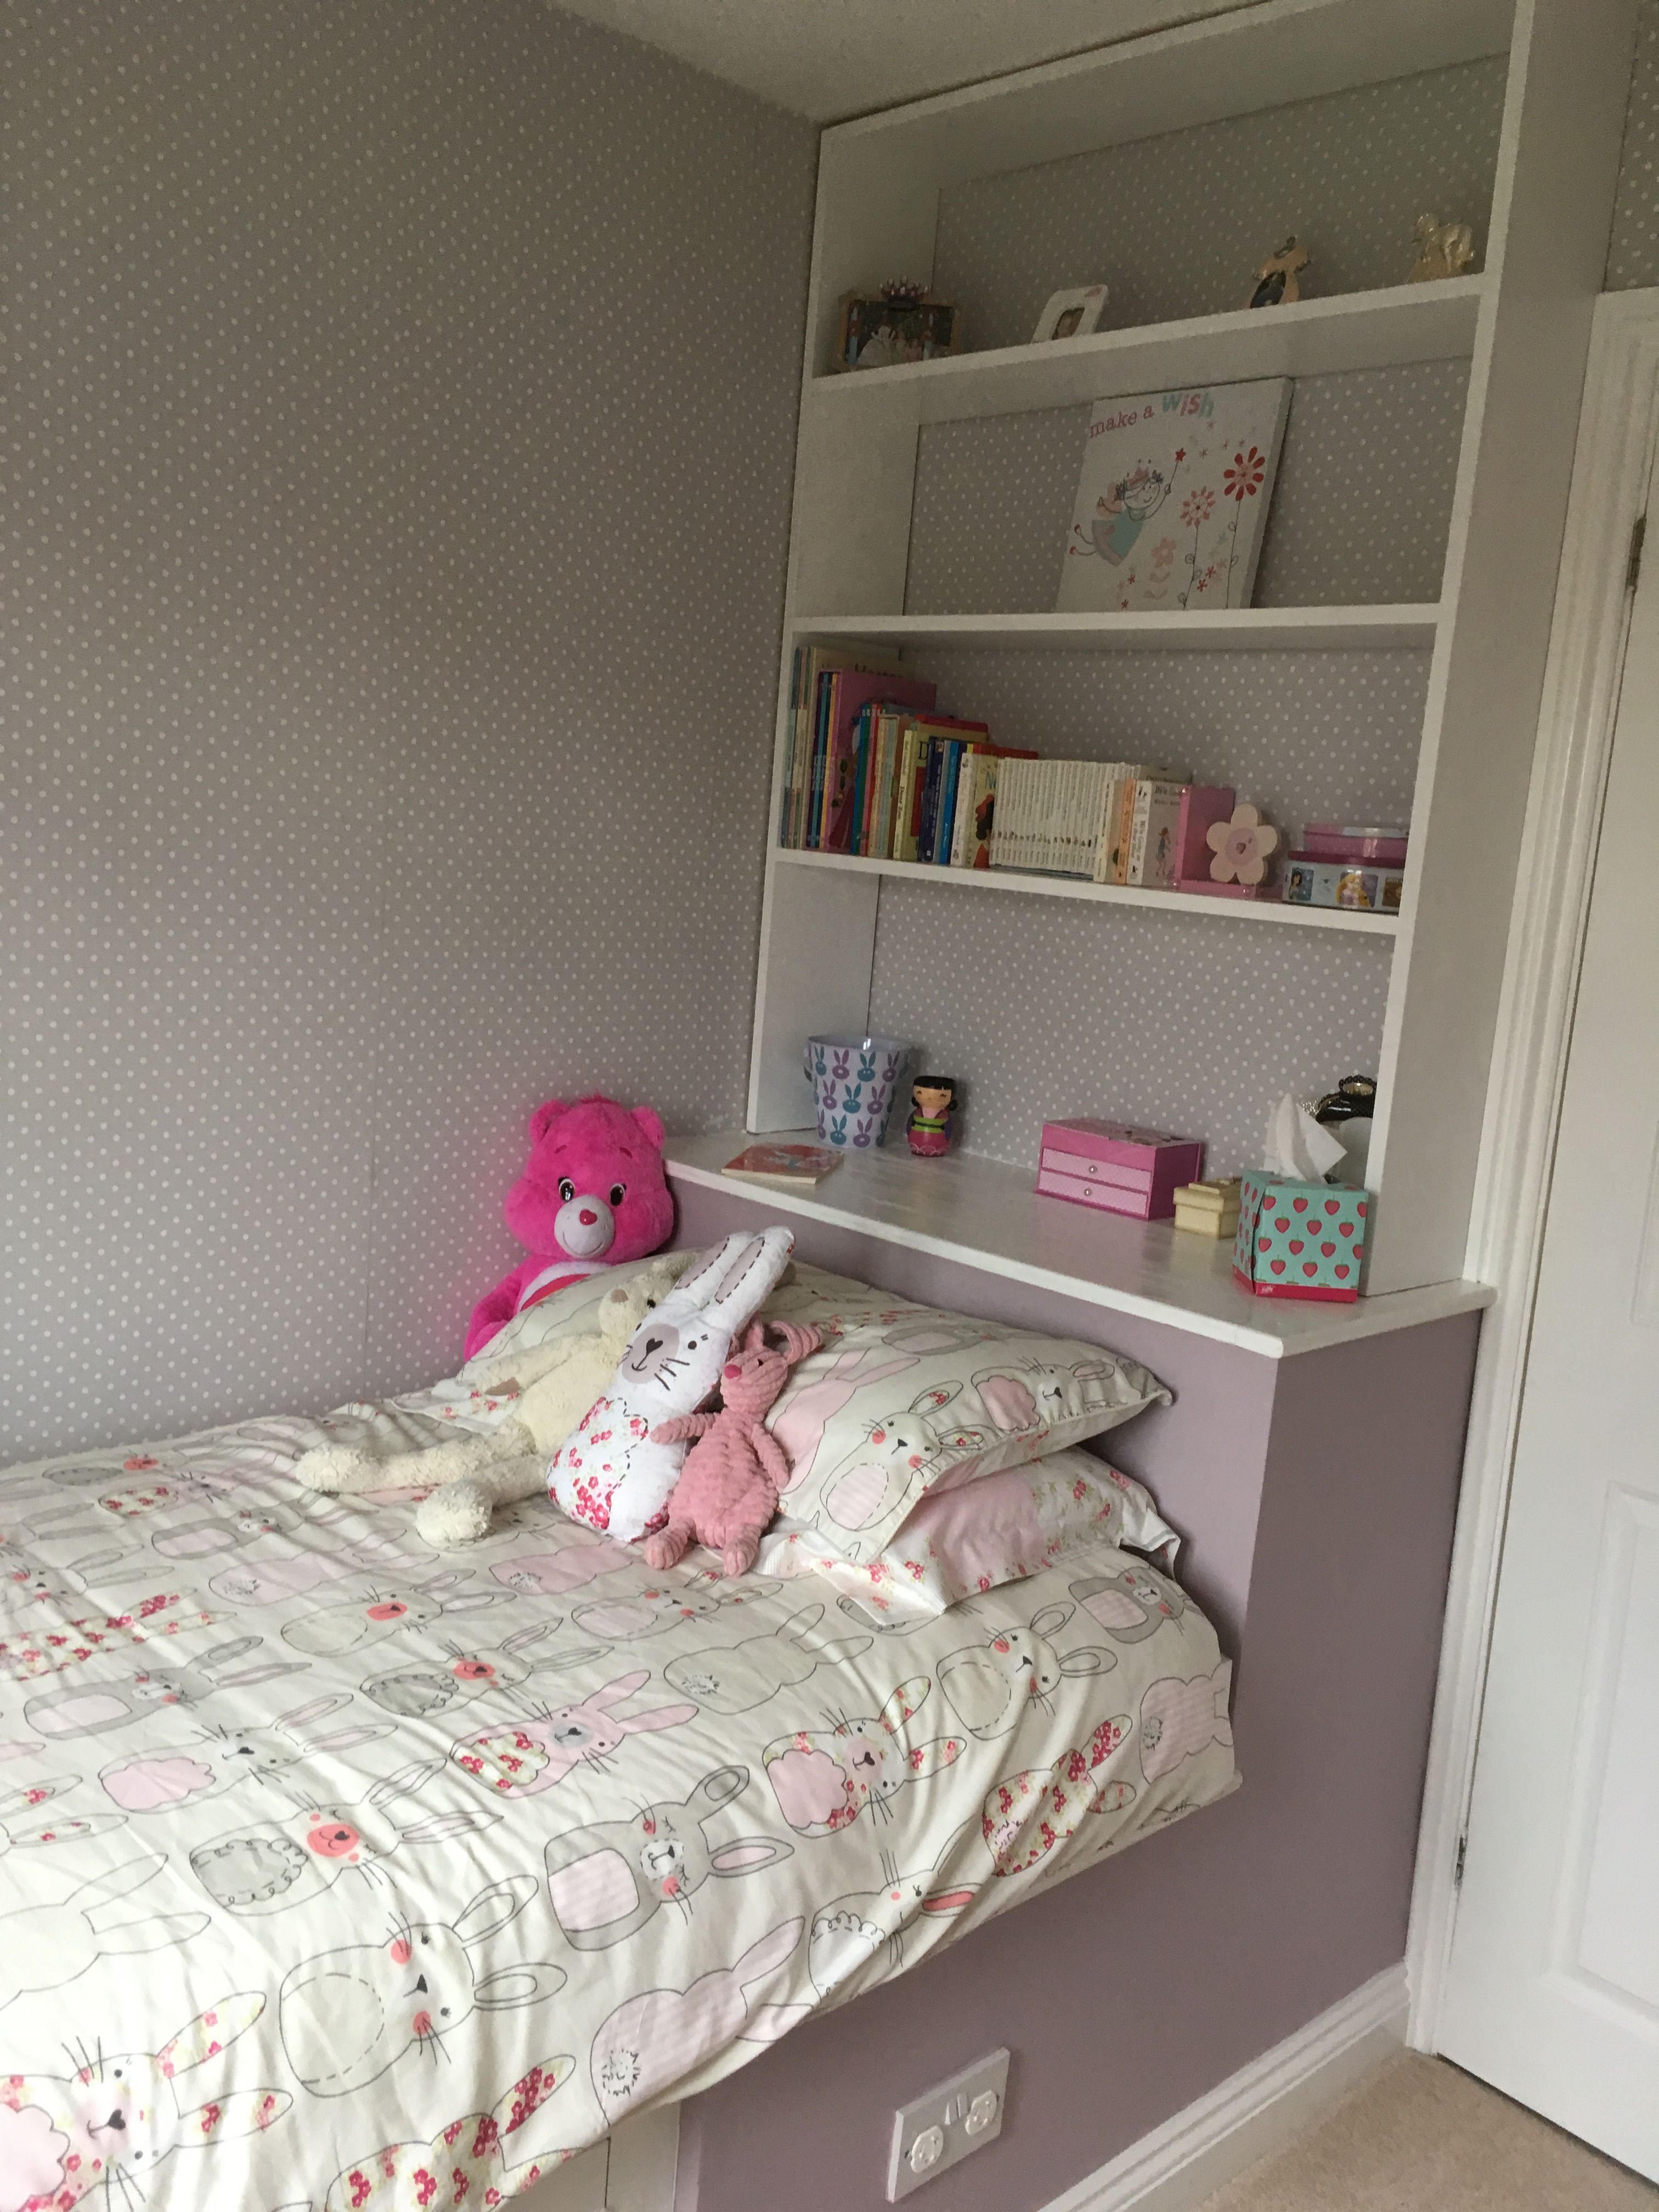 Perfect finish with bedding, painted areas and storages lips ...